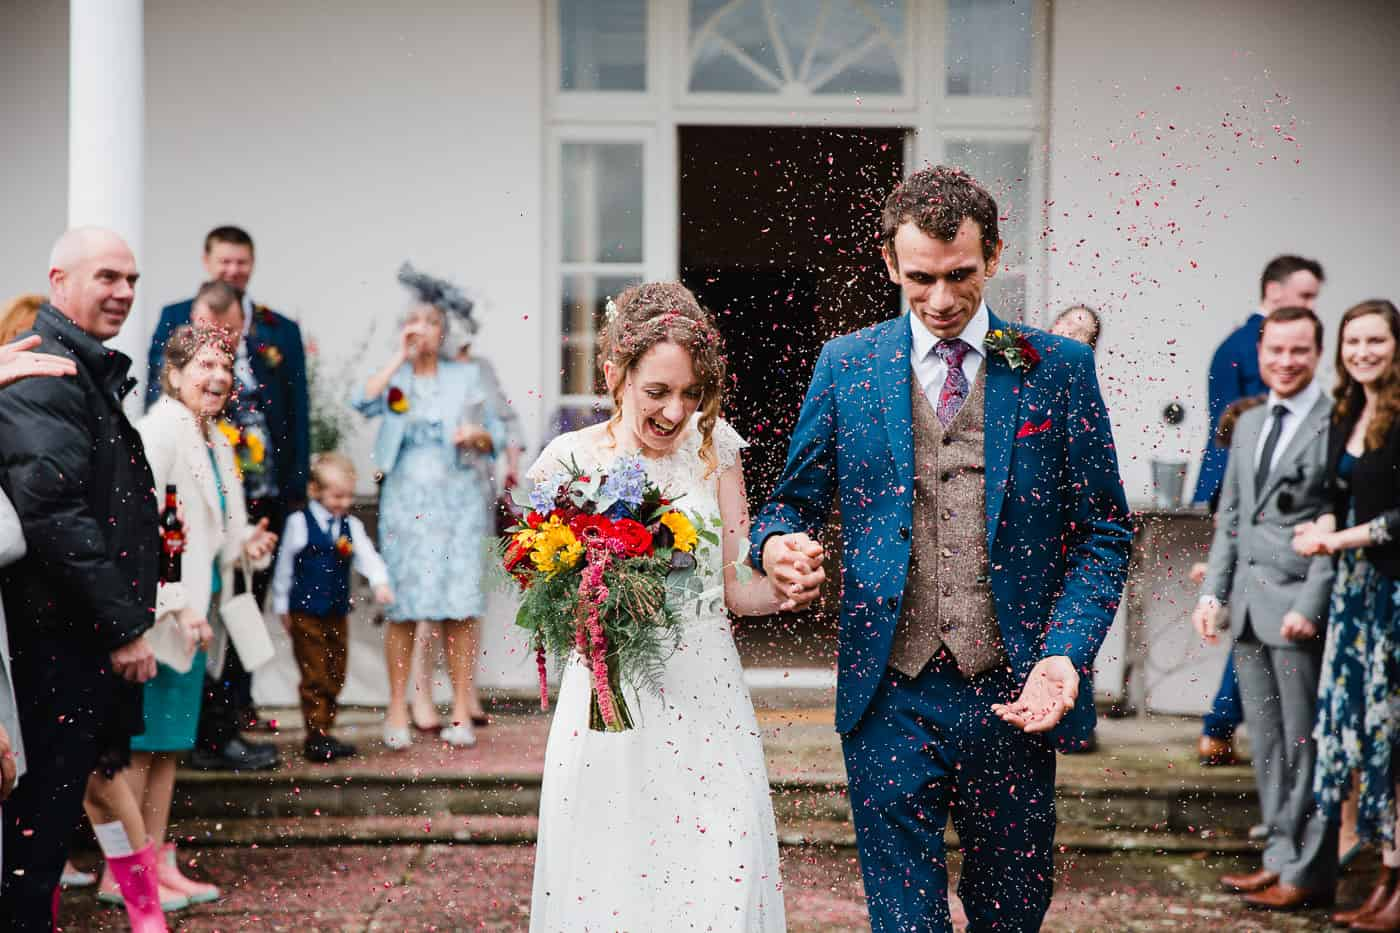 two people smiling holding hands walking through confetti